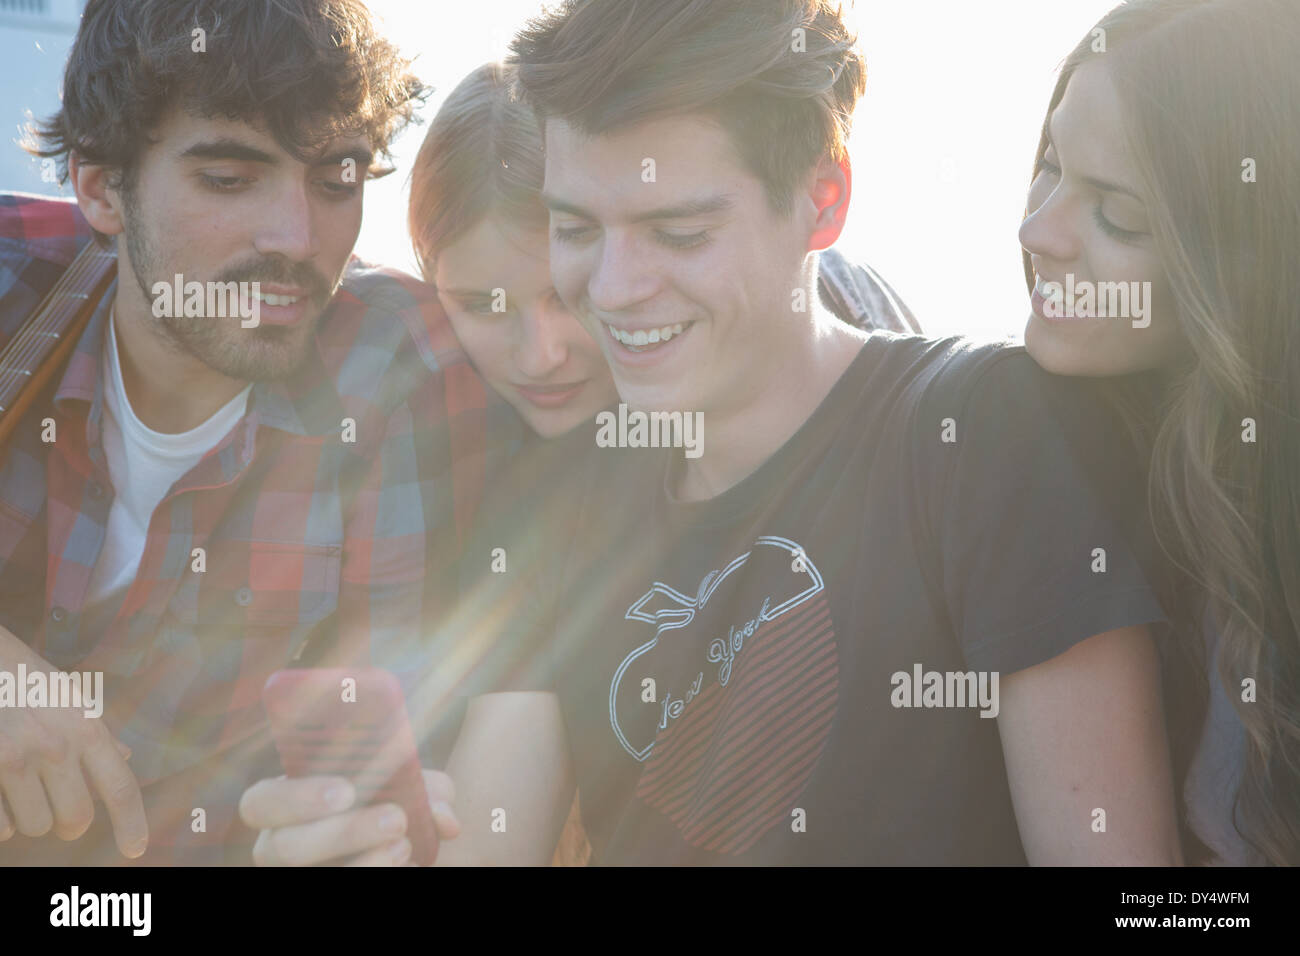 Four friends looking at smartphone - Stock Image